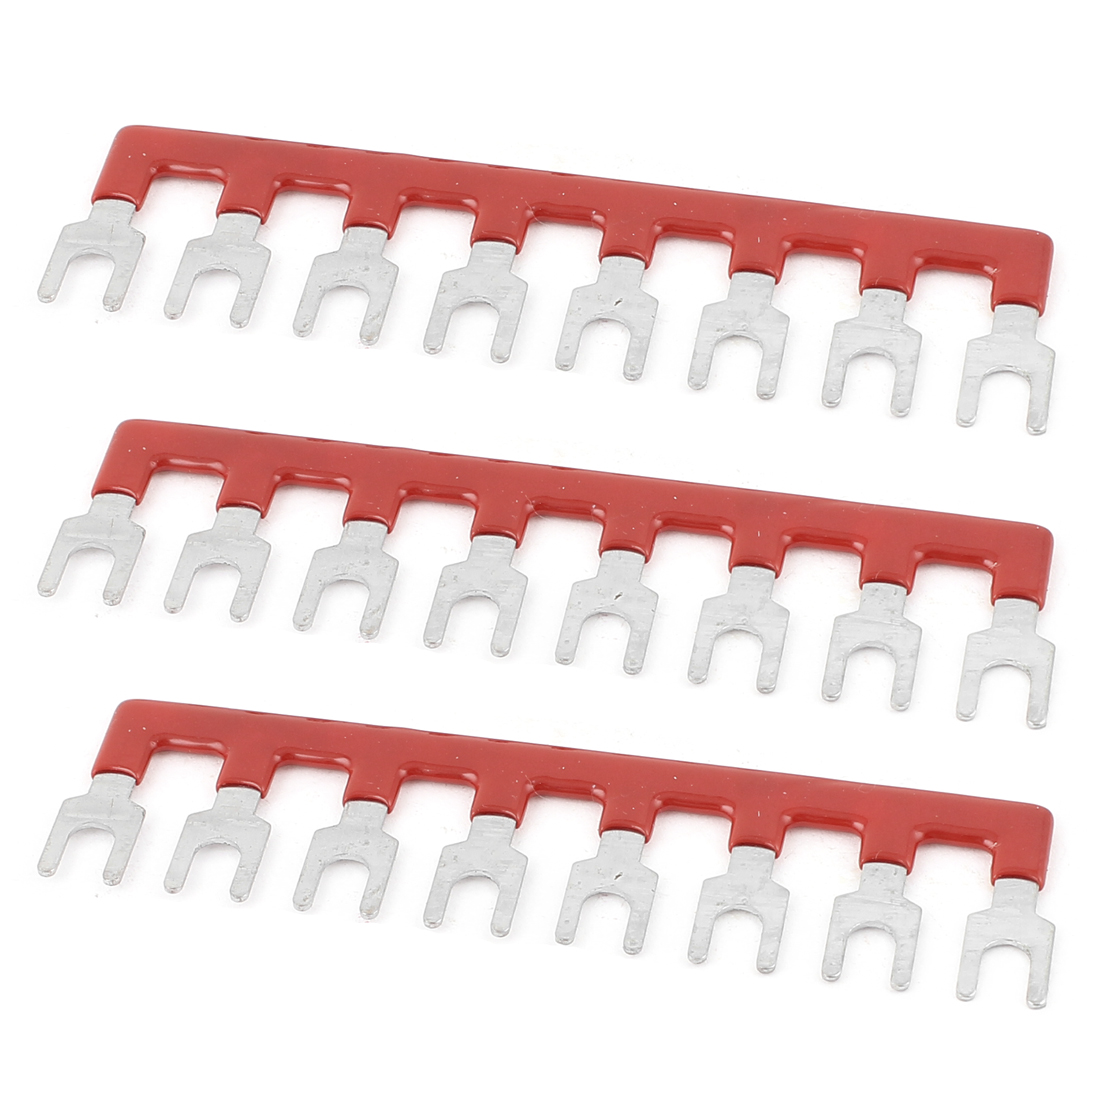 3 Pcs 8 Postions Pre Insulated Terminal Barrier Block Strip Red 600V 25A